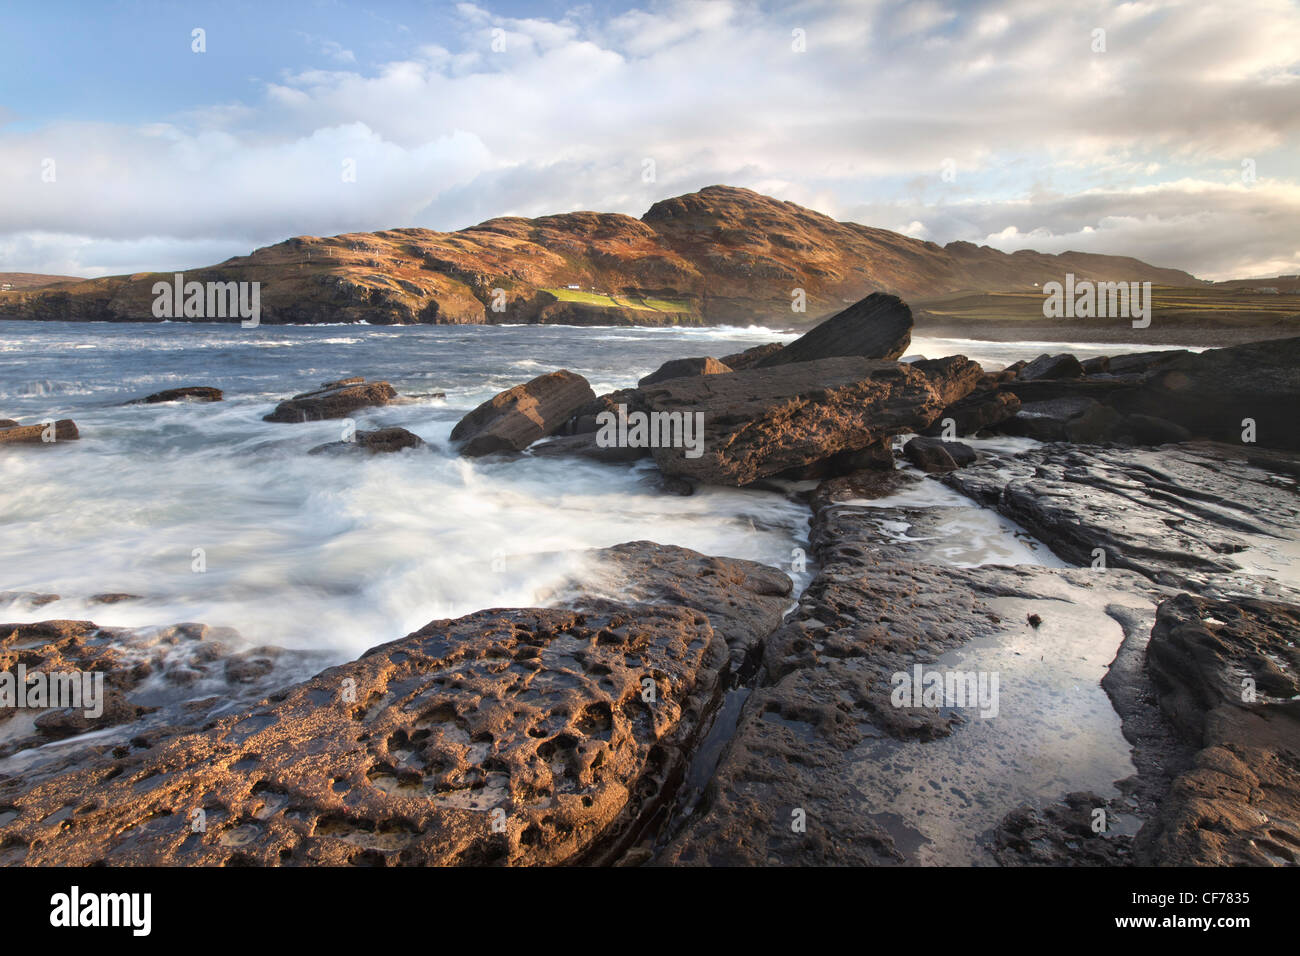 Muckross Head is a small peninsula about 10 km west of Killybegs, - Stock Image